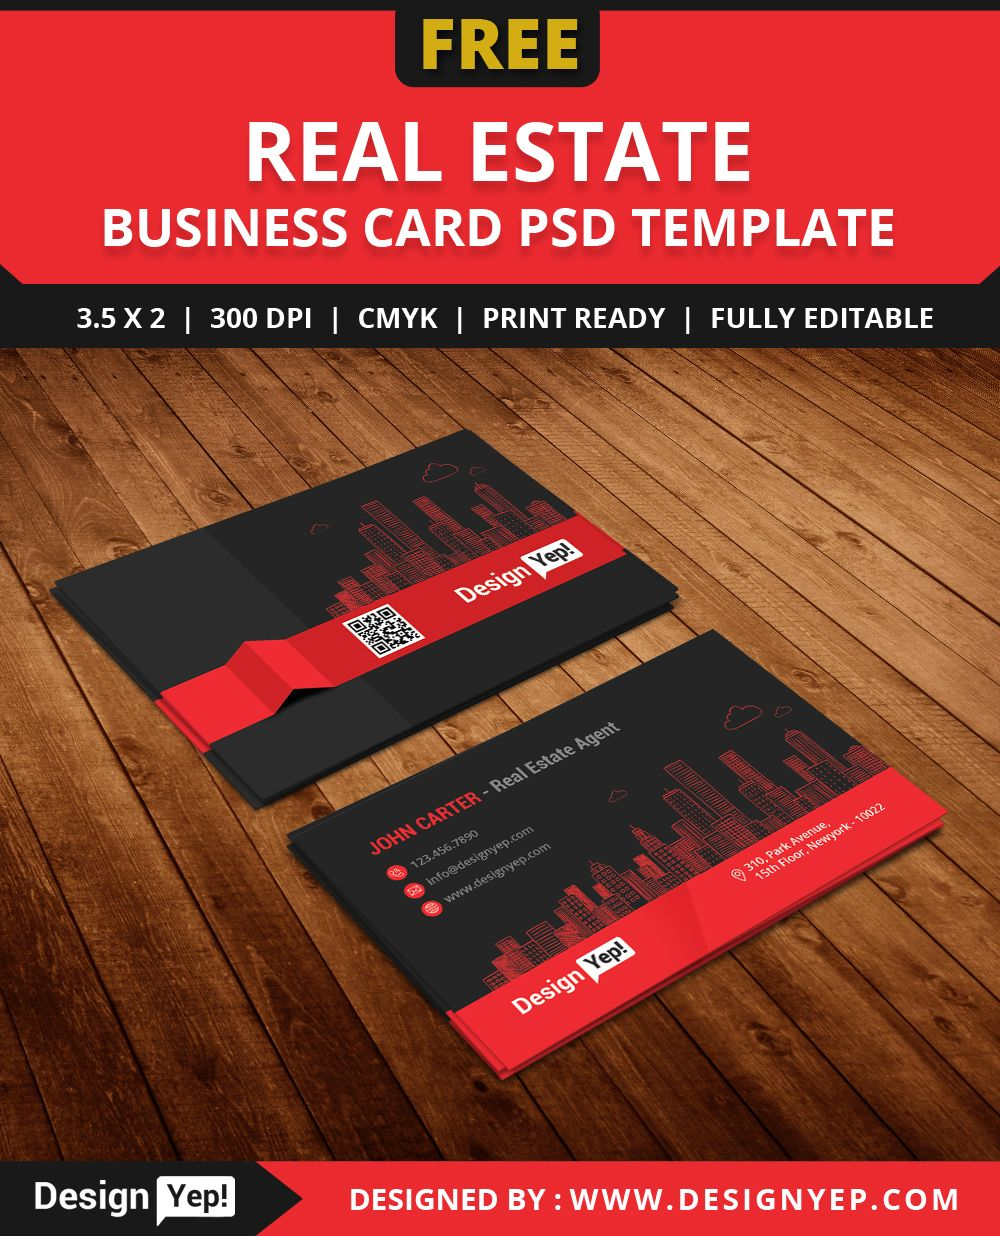 Free real estate agent business card template psd free business free real estate agent business card template psd accmission Choice Image